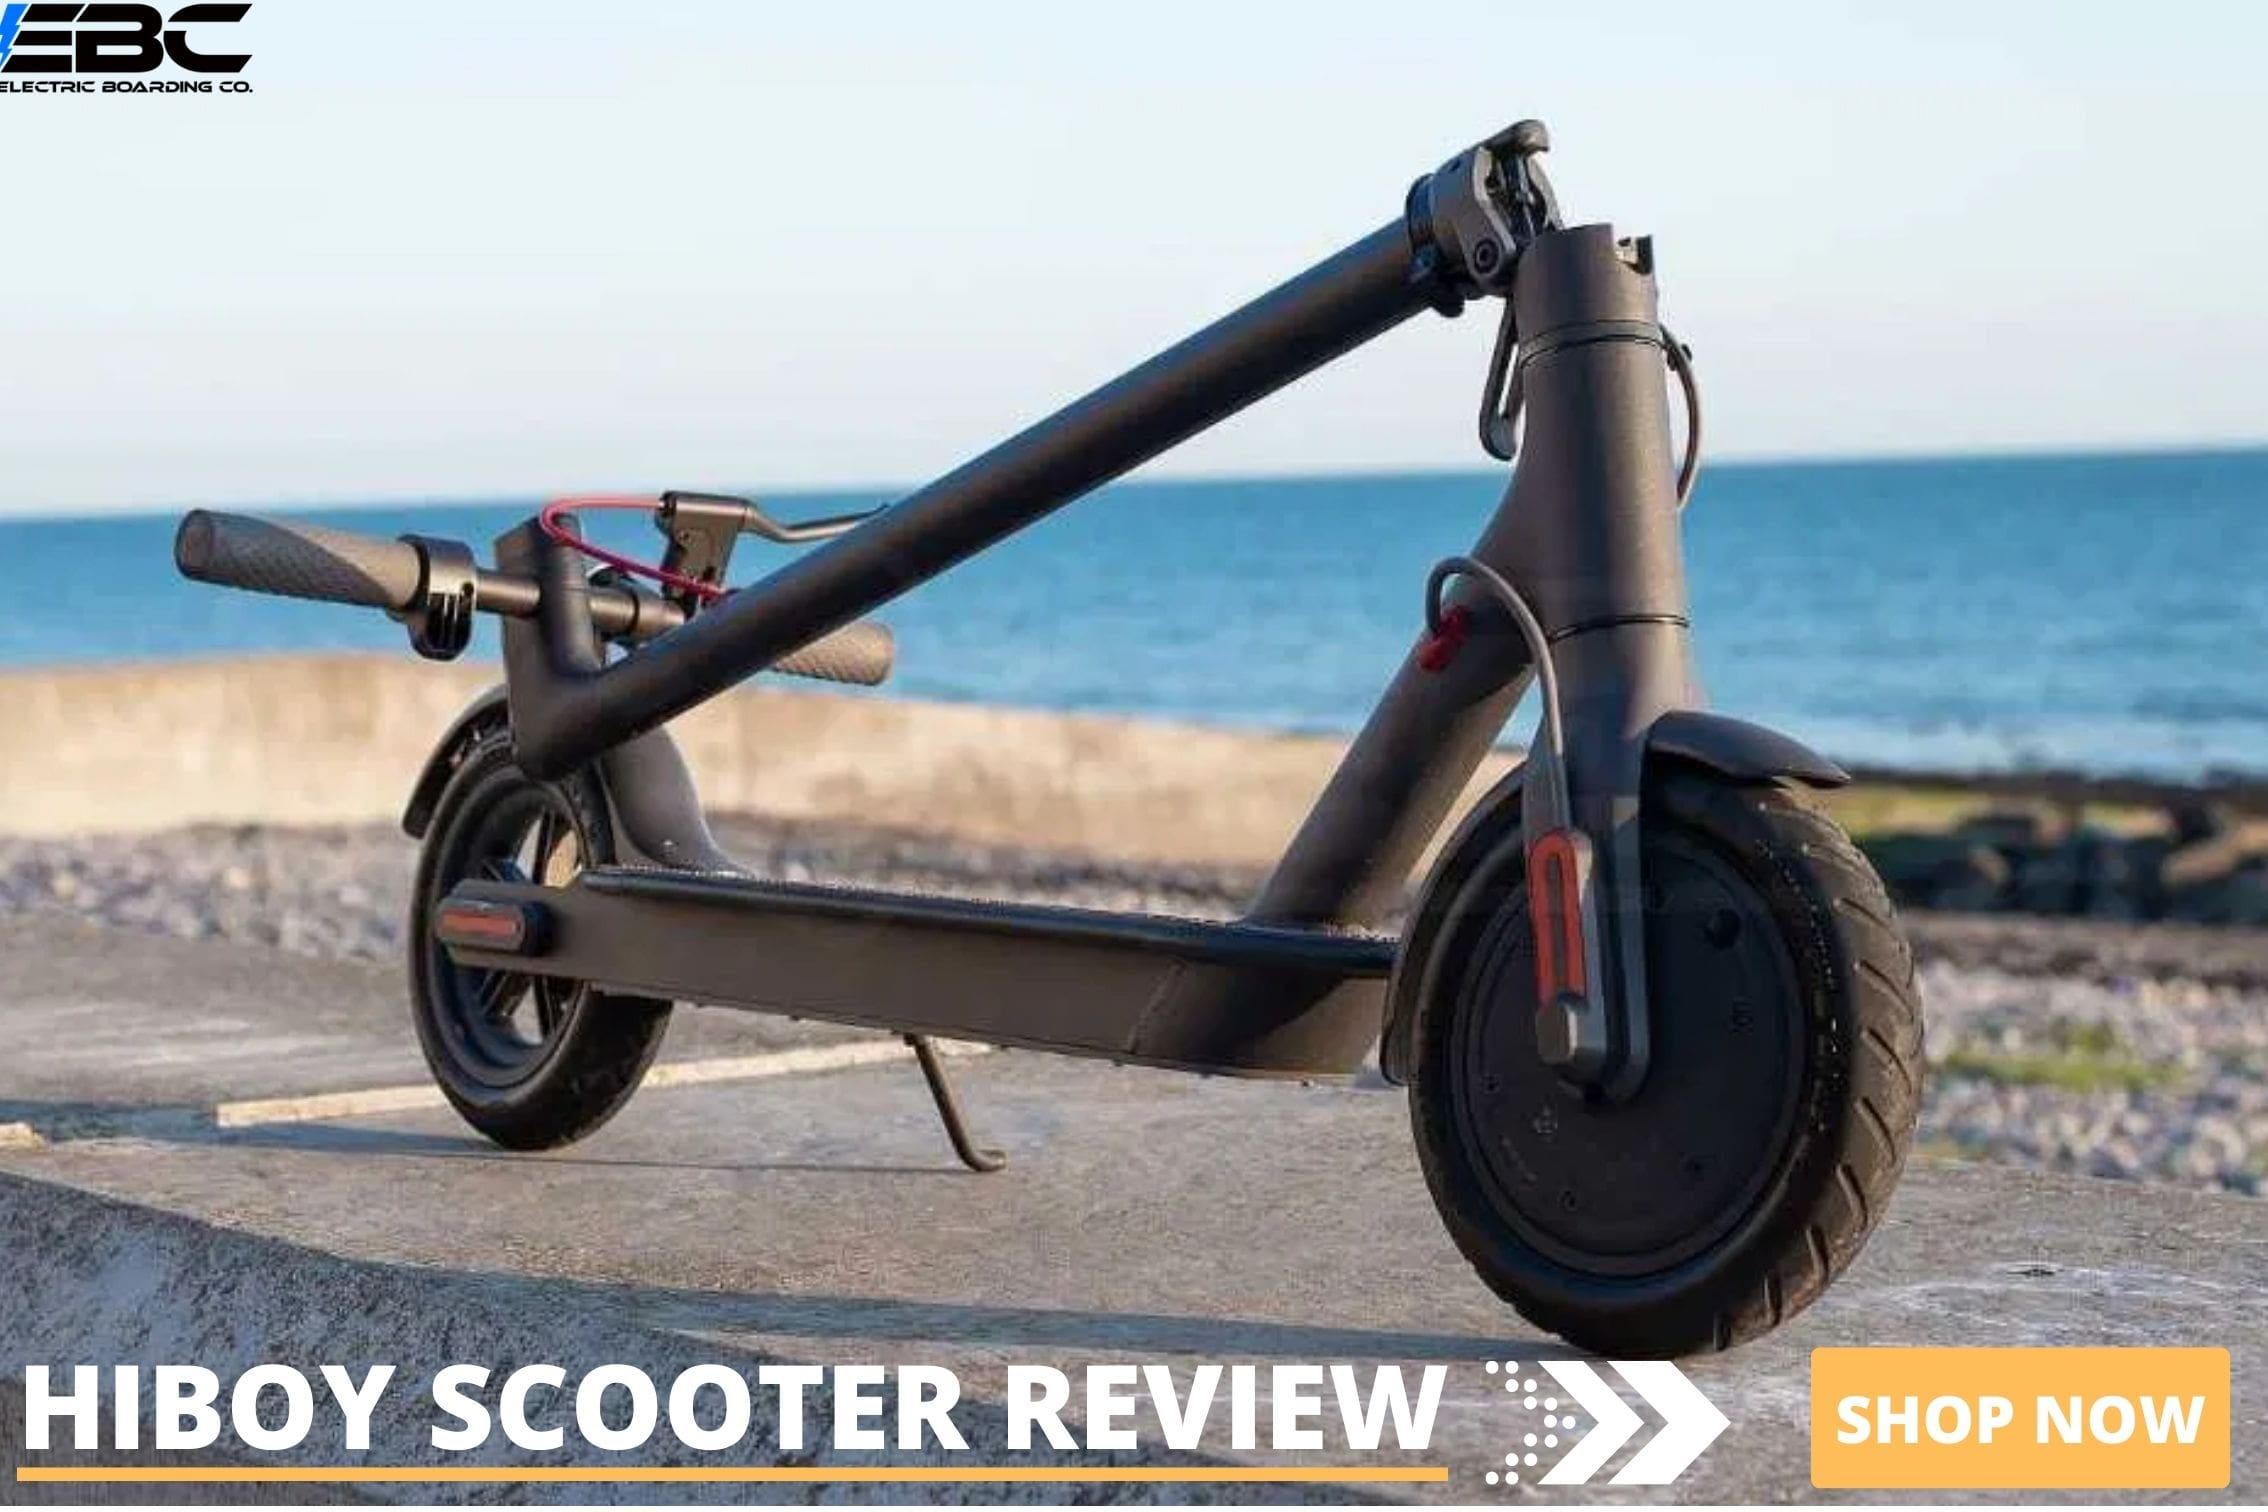 Hiboy Scooter Review